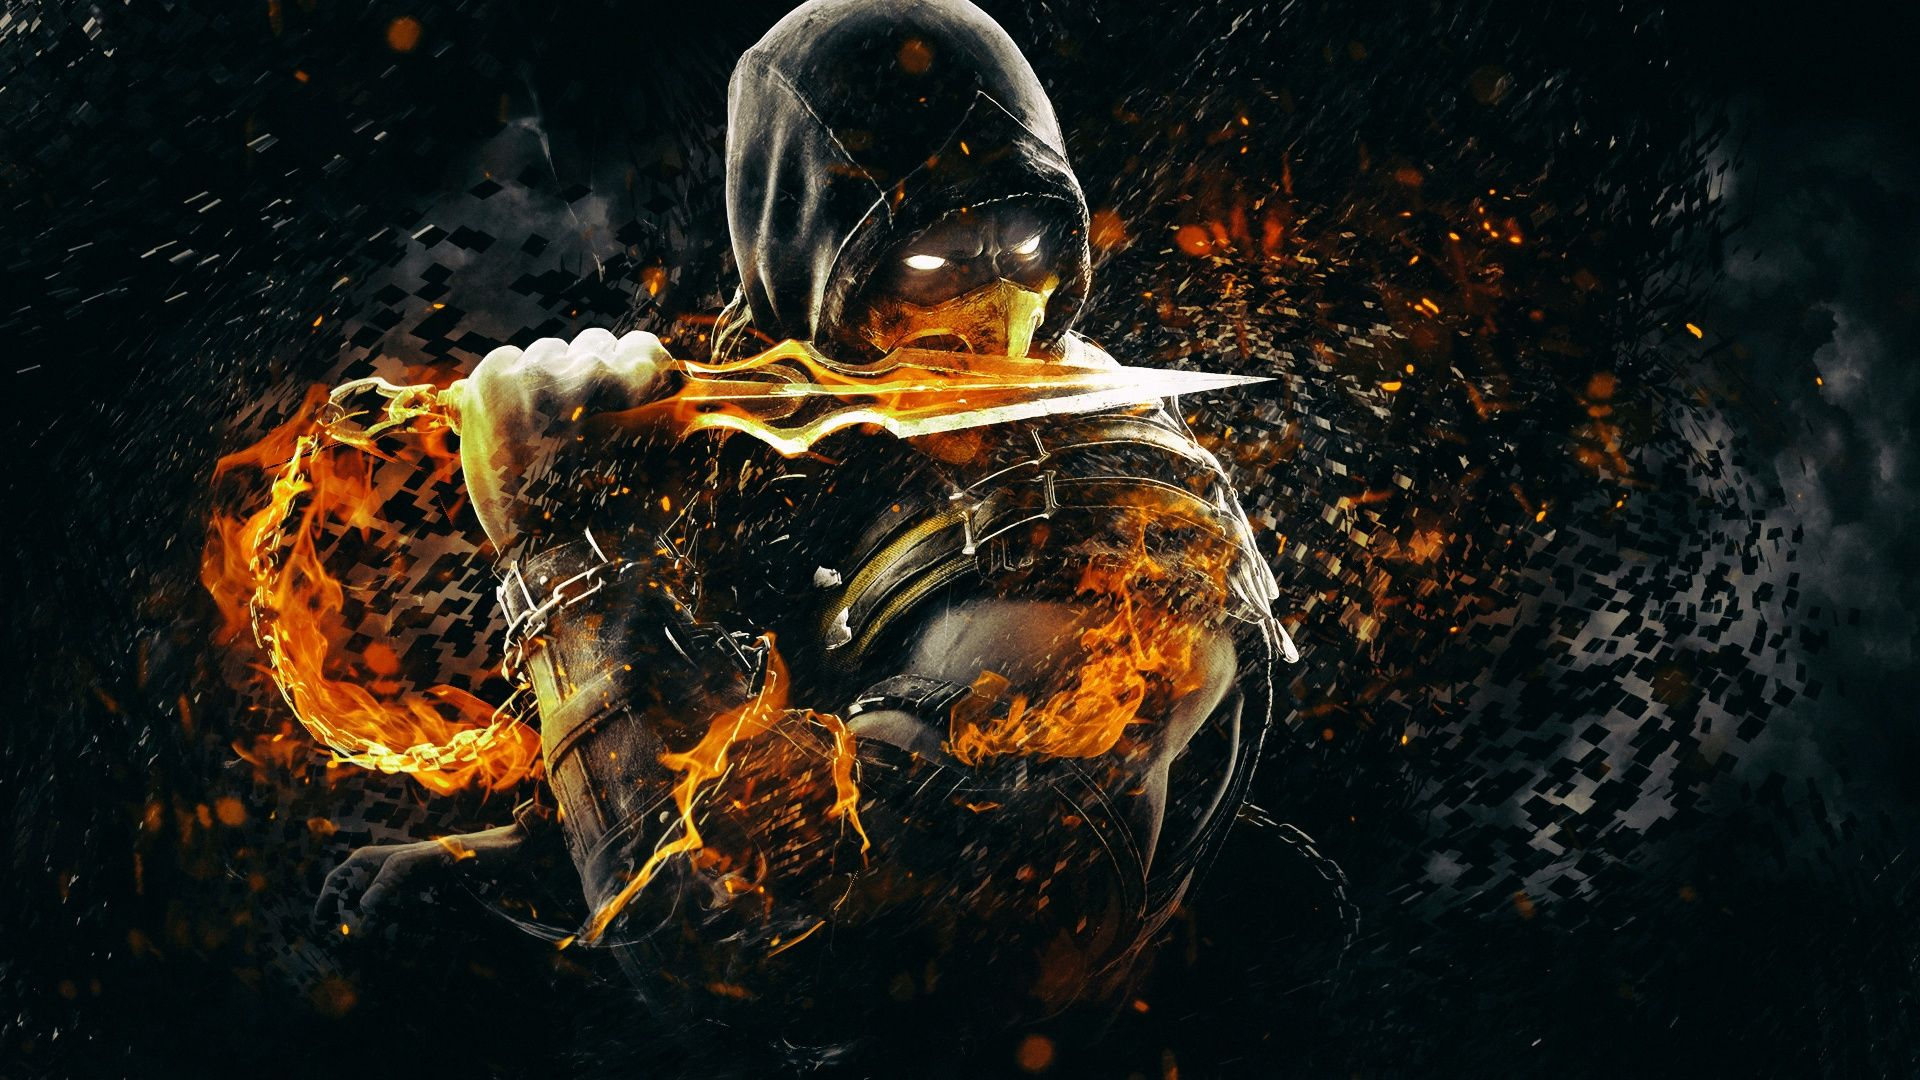 Scorpion Mortal Kombat X Art Hd Wallpaper [1920 x 1080